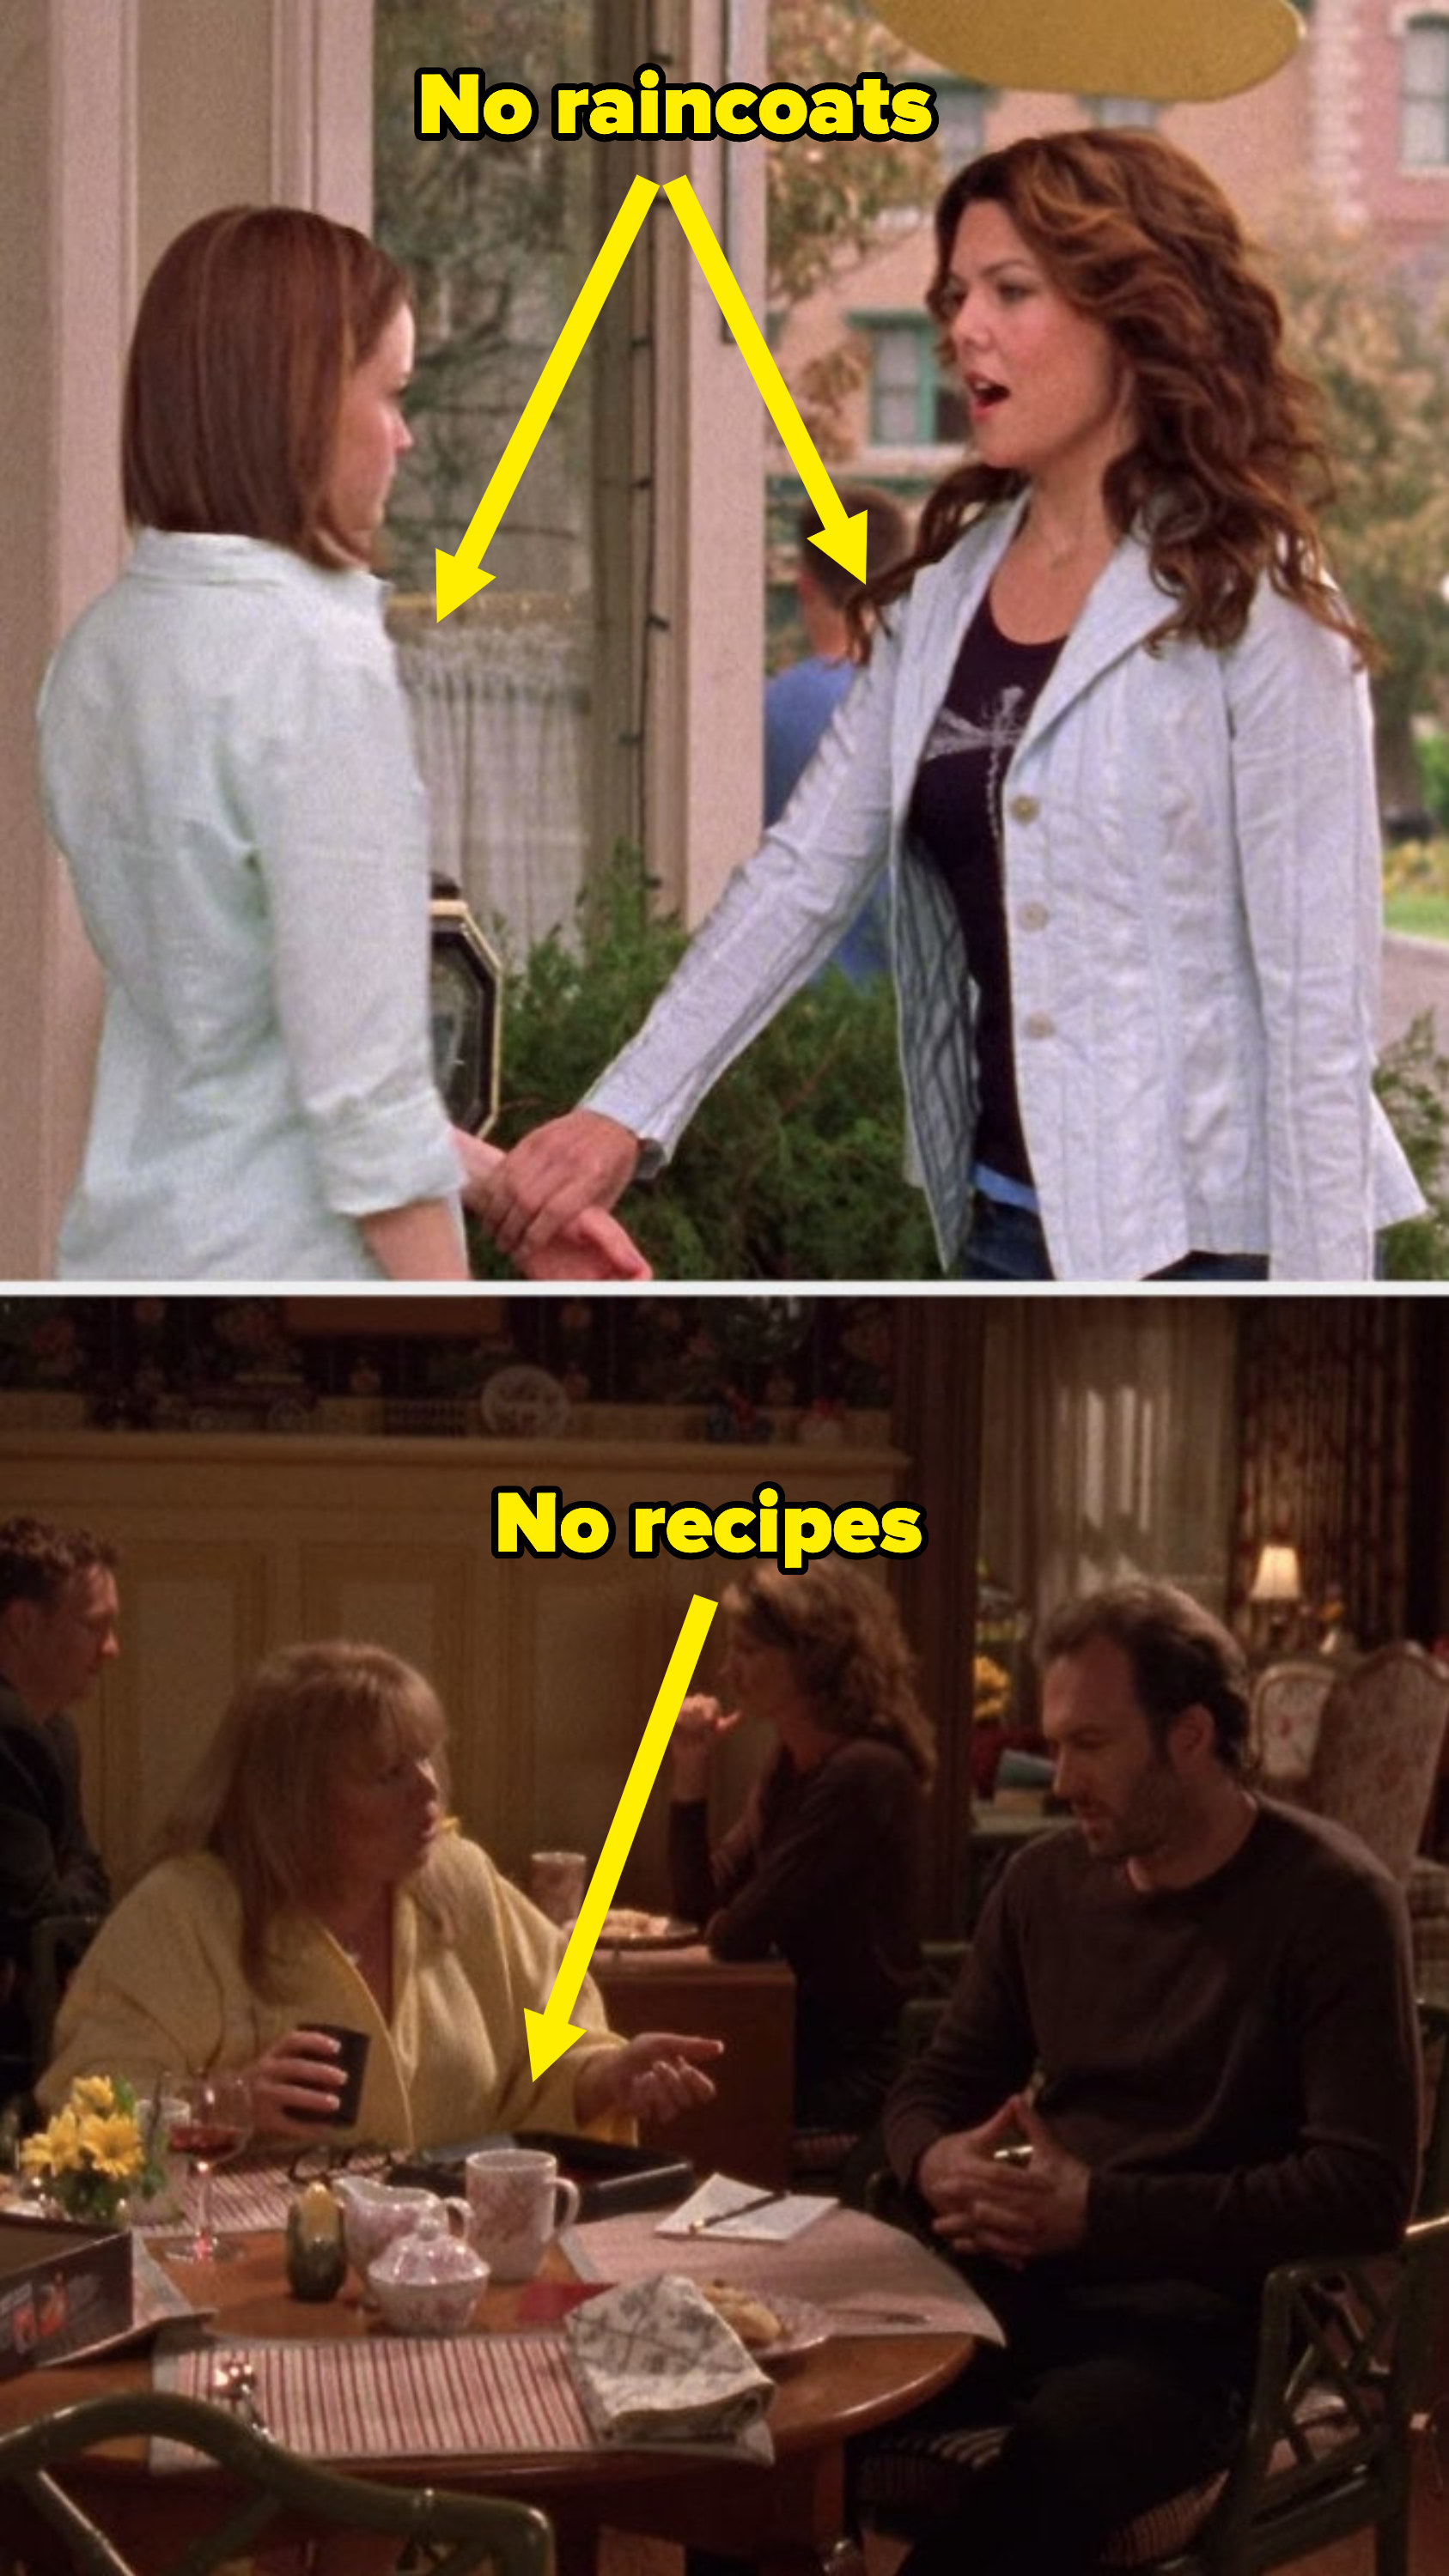 No raincoats or recipes throughout the episode